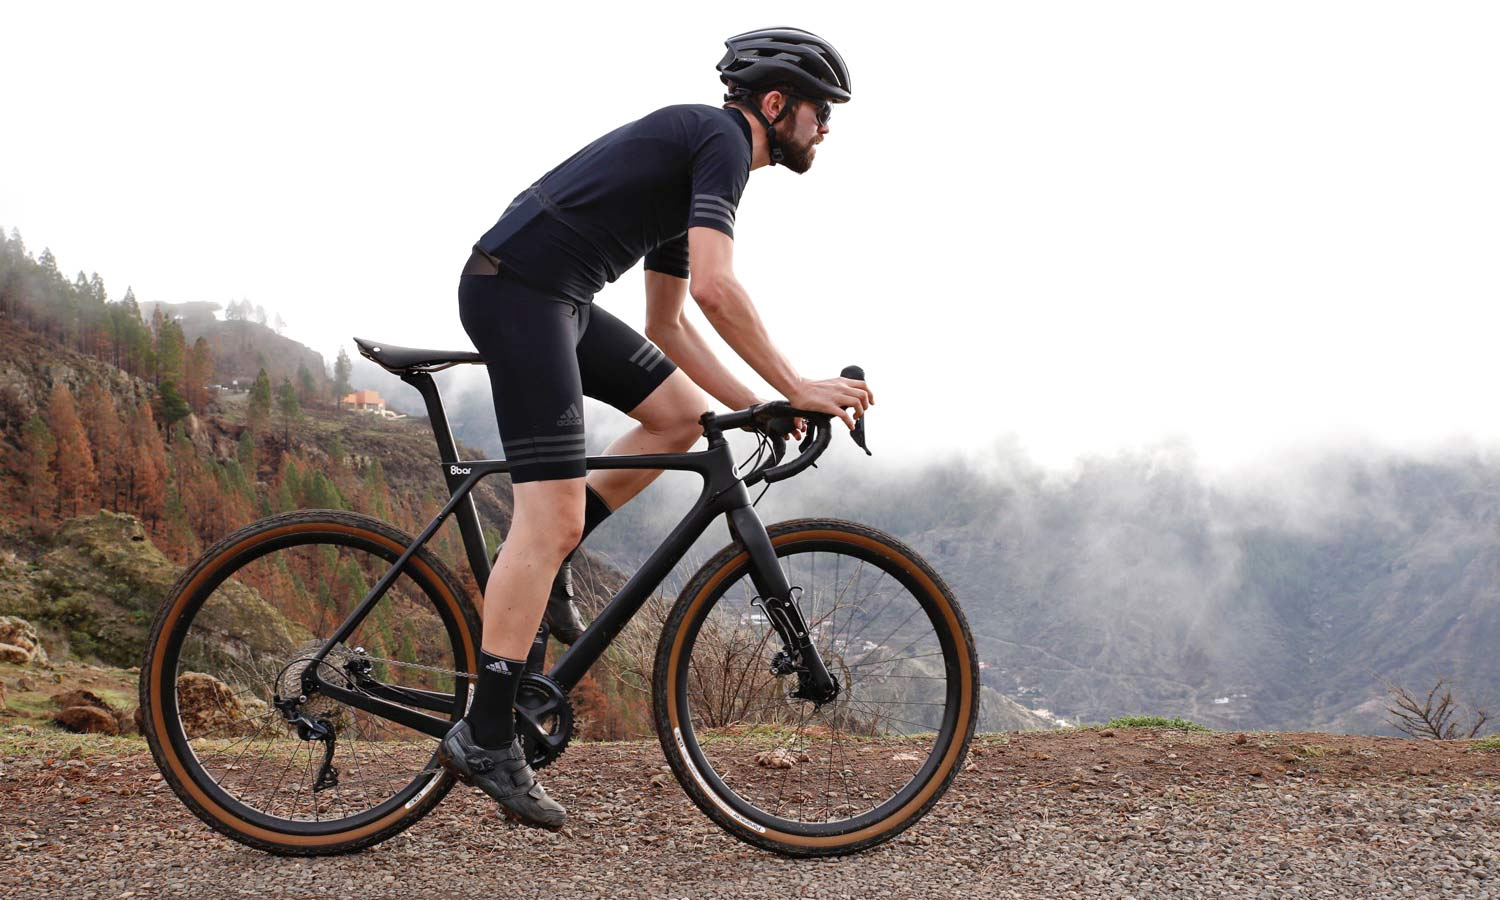 8bar Carbon Grunewald Takes Road Geometry Off Road Onto